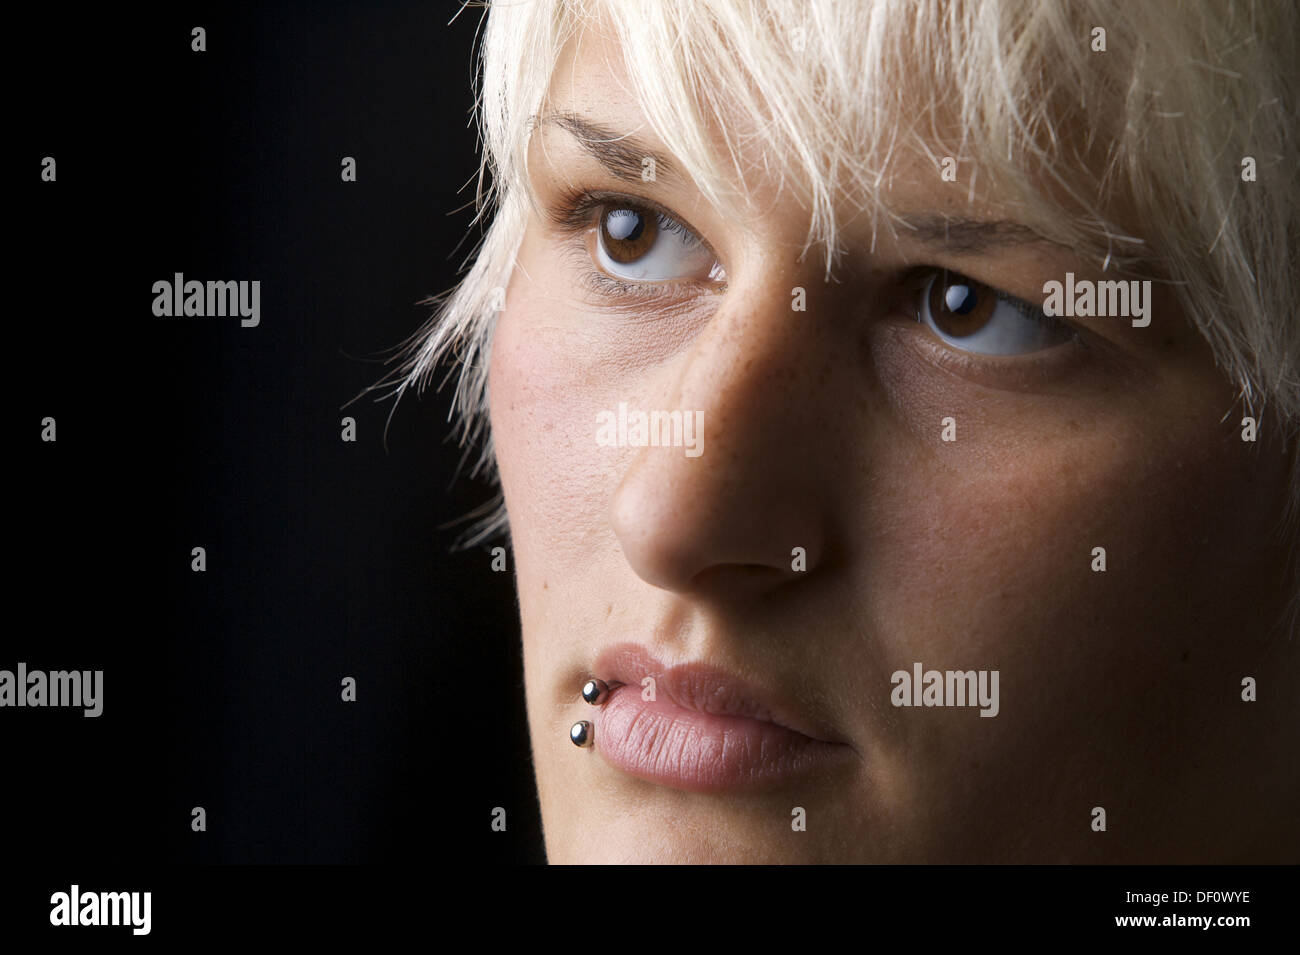 Herne, Germany, portrait photograph of a woman pierced Stock Photo